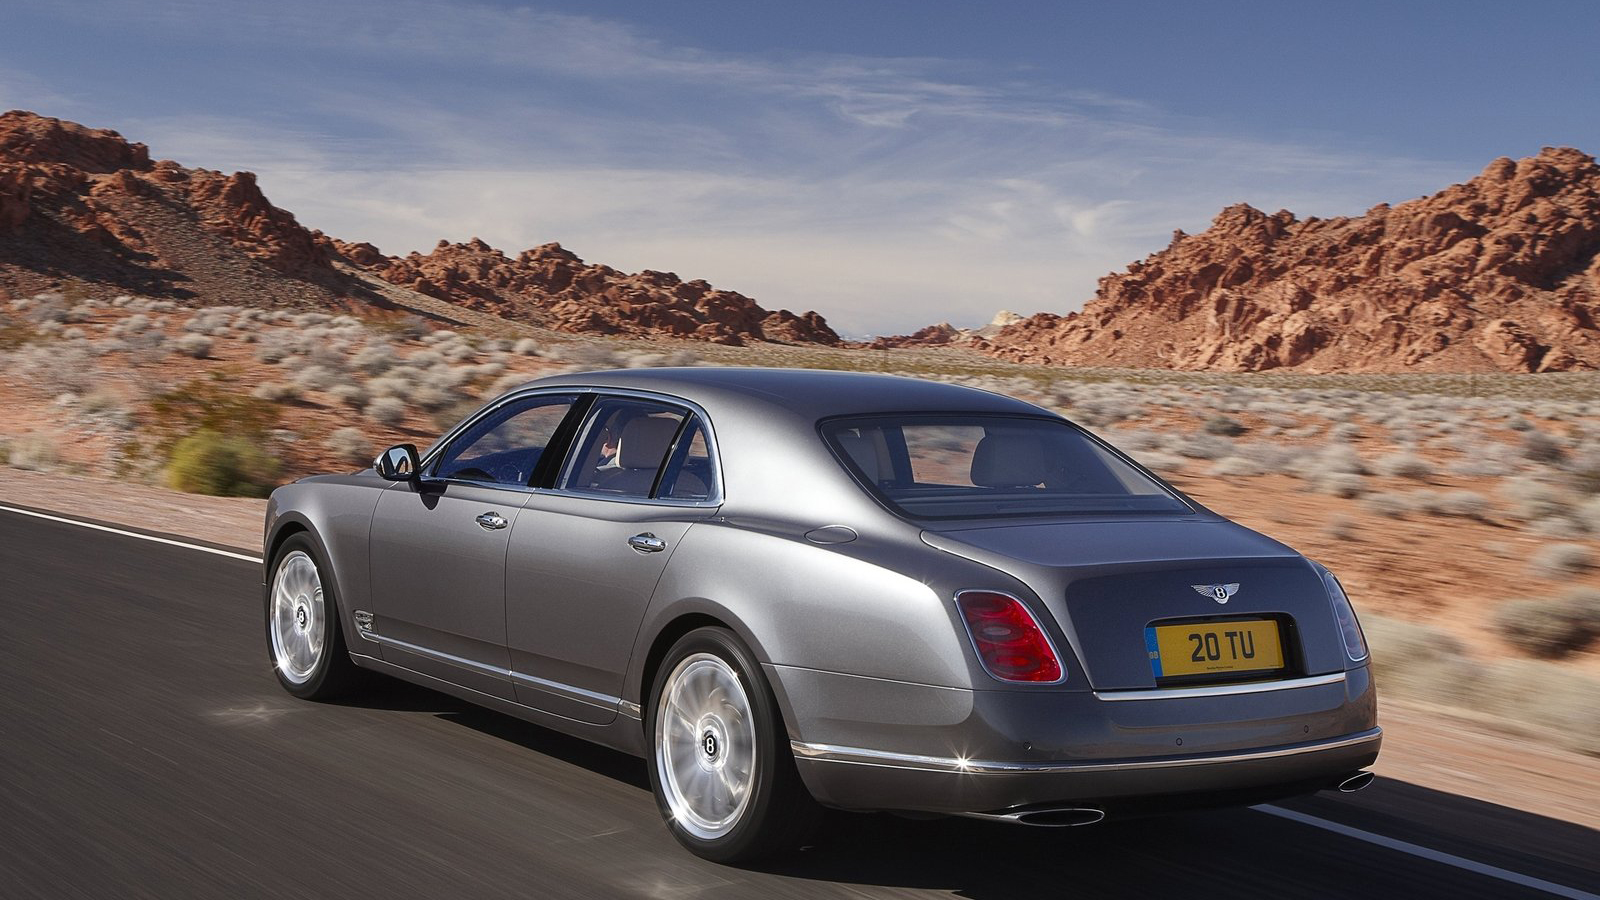 car wallpapers in good images  2013 bentley mulsanne mulliner on 21 u0026quot  6 75 v8 505 cv 296 kmh 0